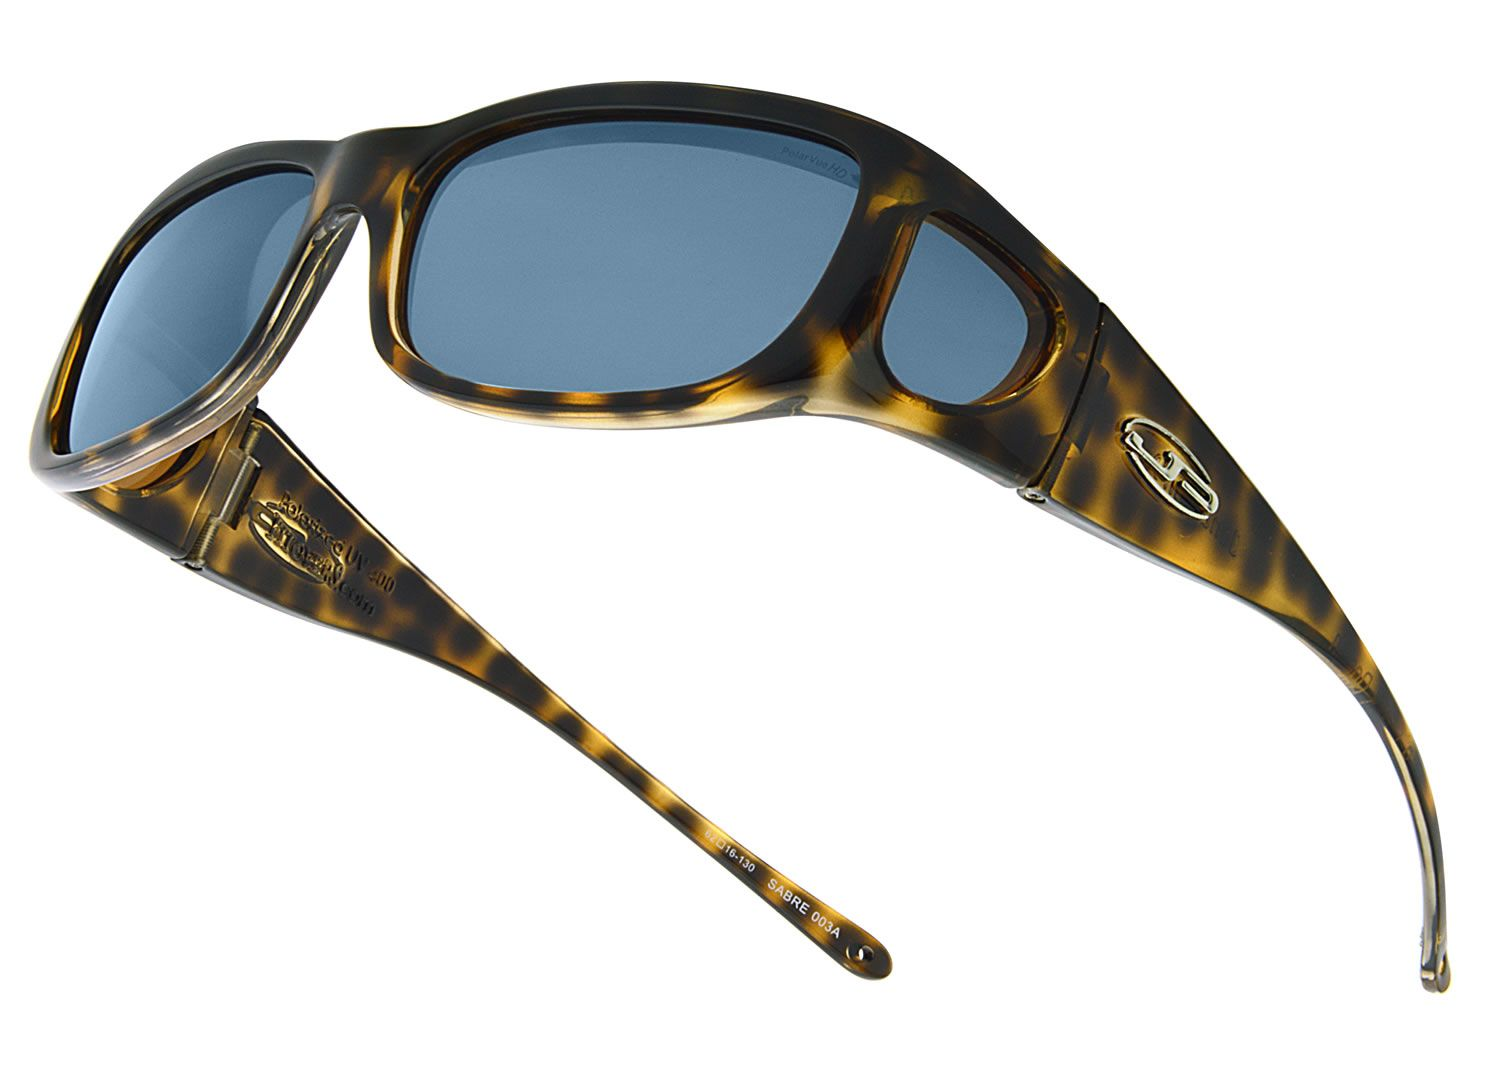 246e03fca85b Sabre™ Cheetah Fitovers - stylish fit over sunglasses by the original  Fitovers Eyewear™